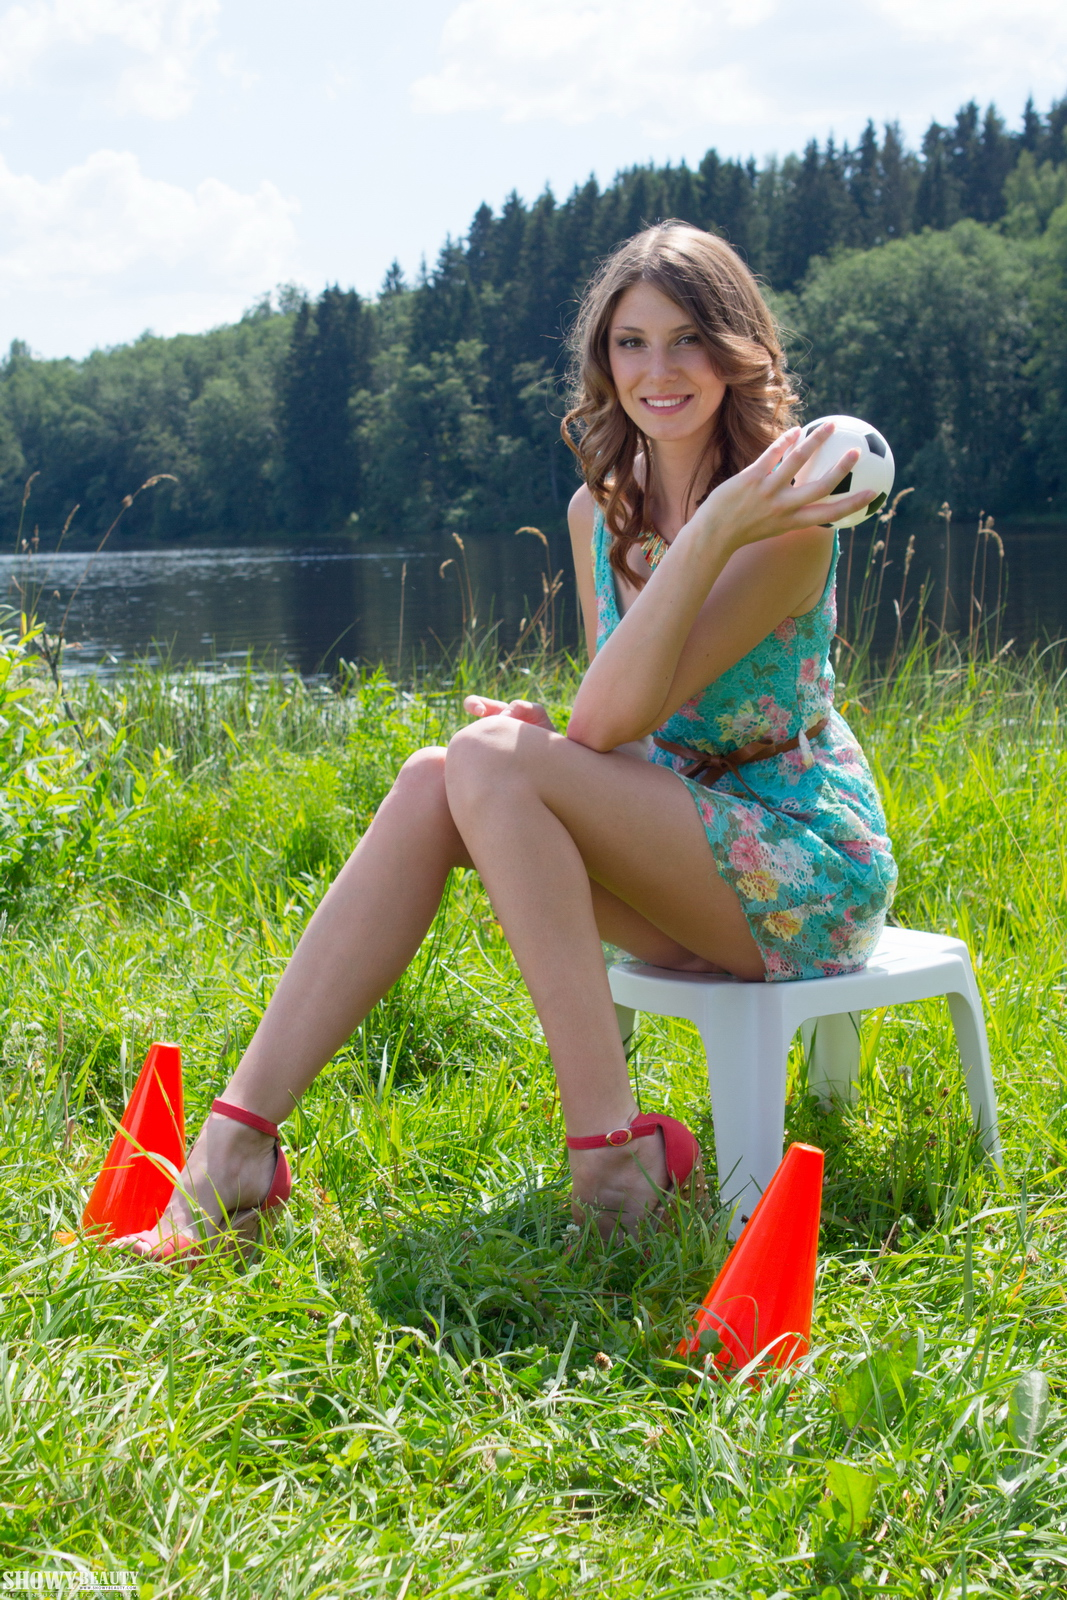 mimi-nude-girl-by-the-lake-showybeauty-01